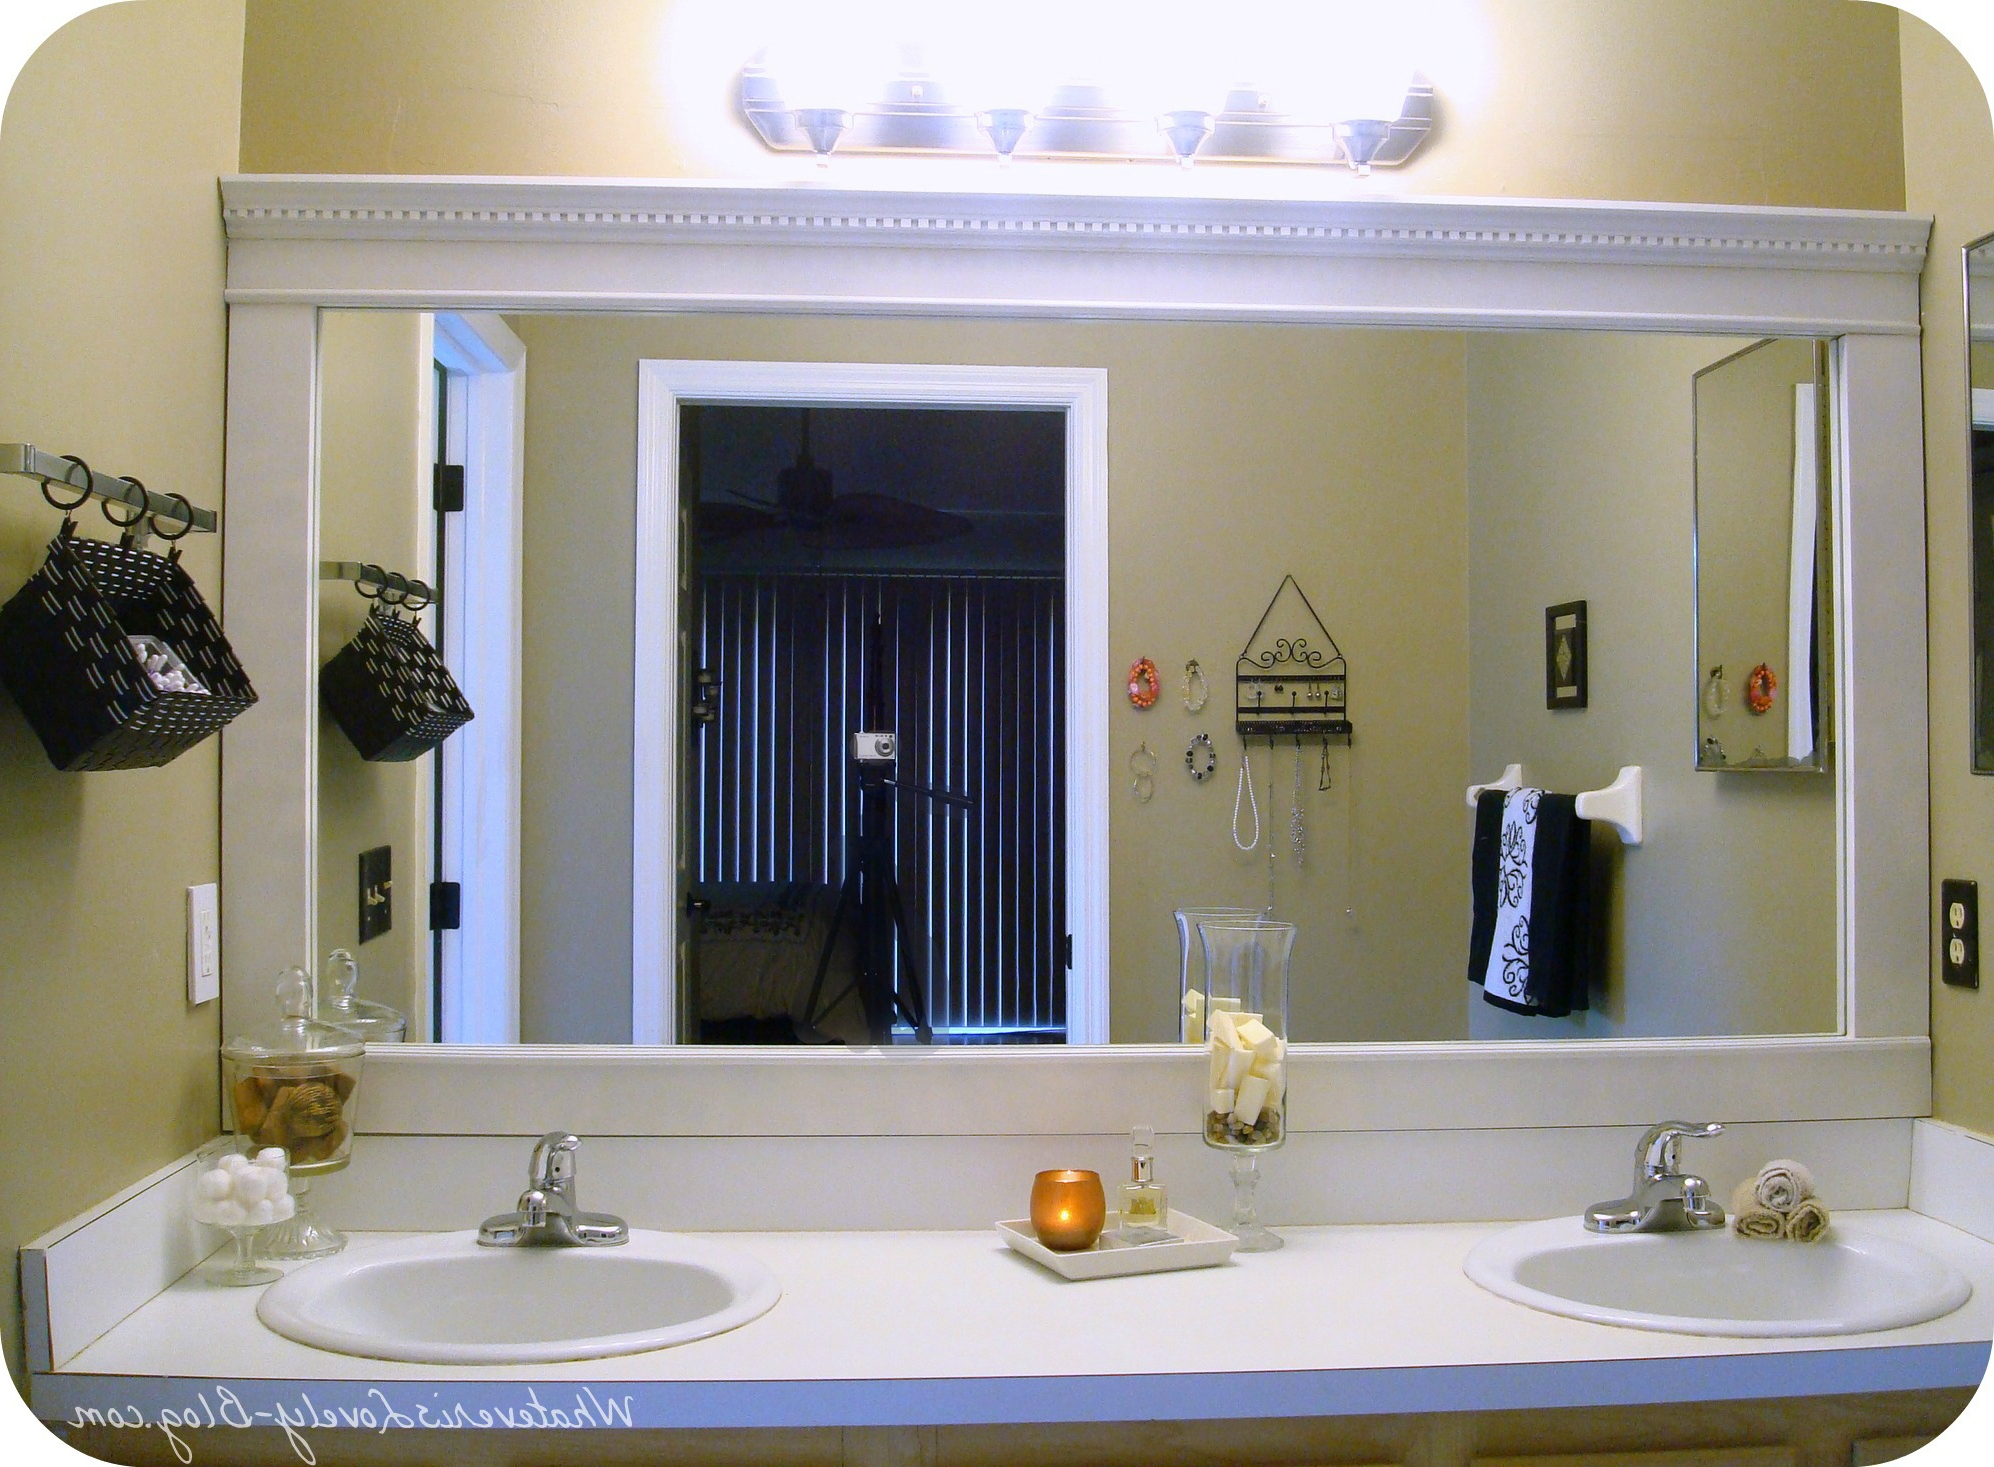 Floor White Interior Lcitbilaspur Wood Bathroom Autocaremx Mirror For Newest Frames For Bathroom Wall Mirrors (View 3 of 20)